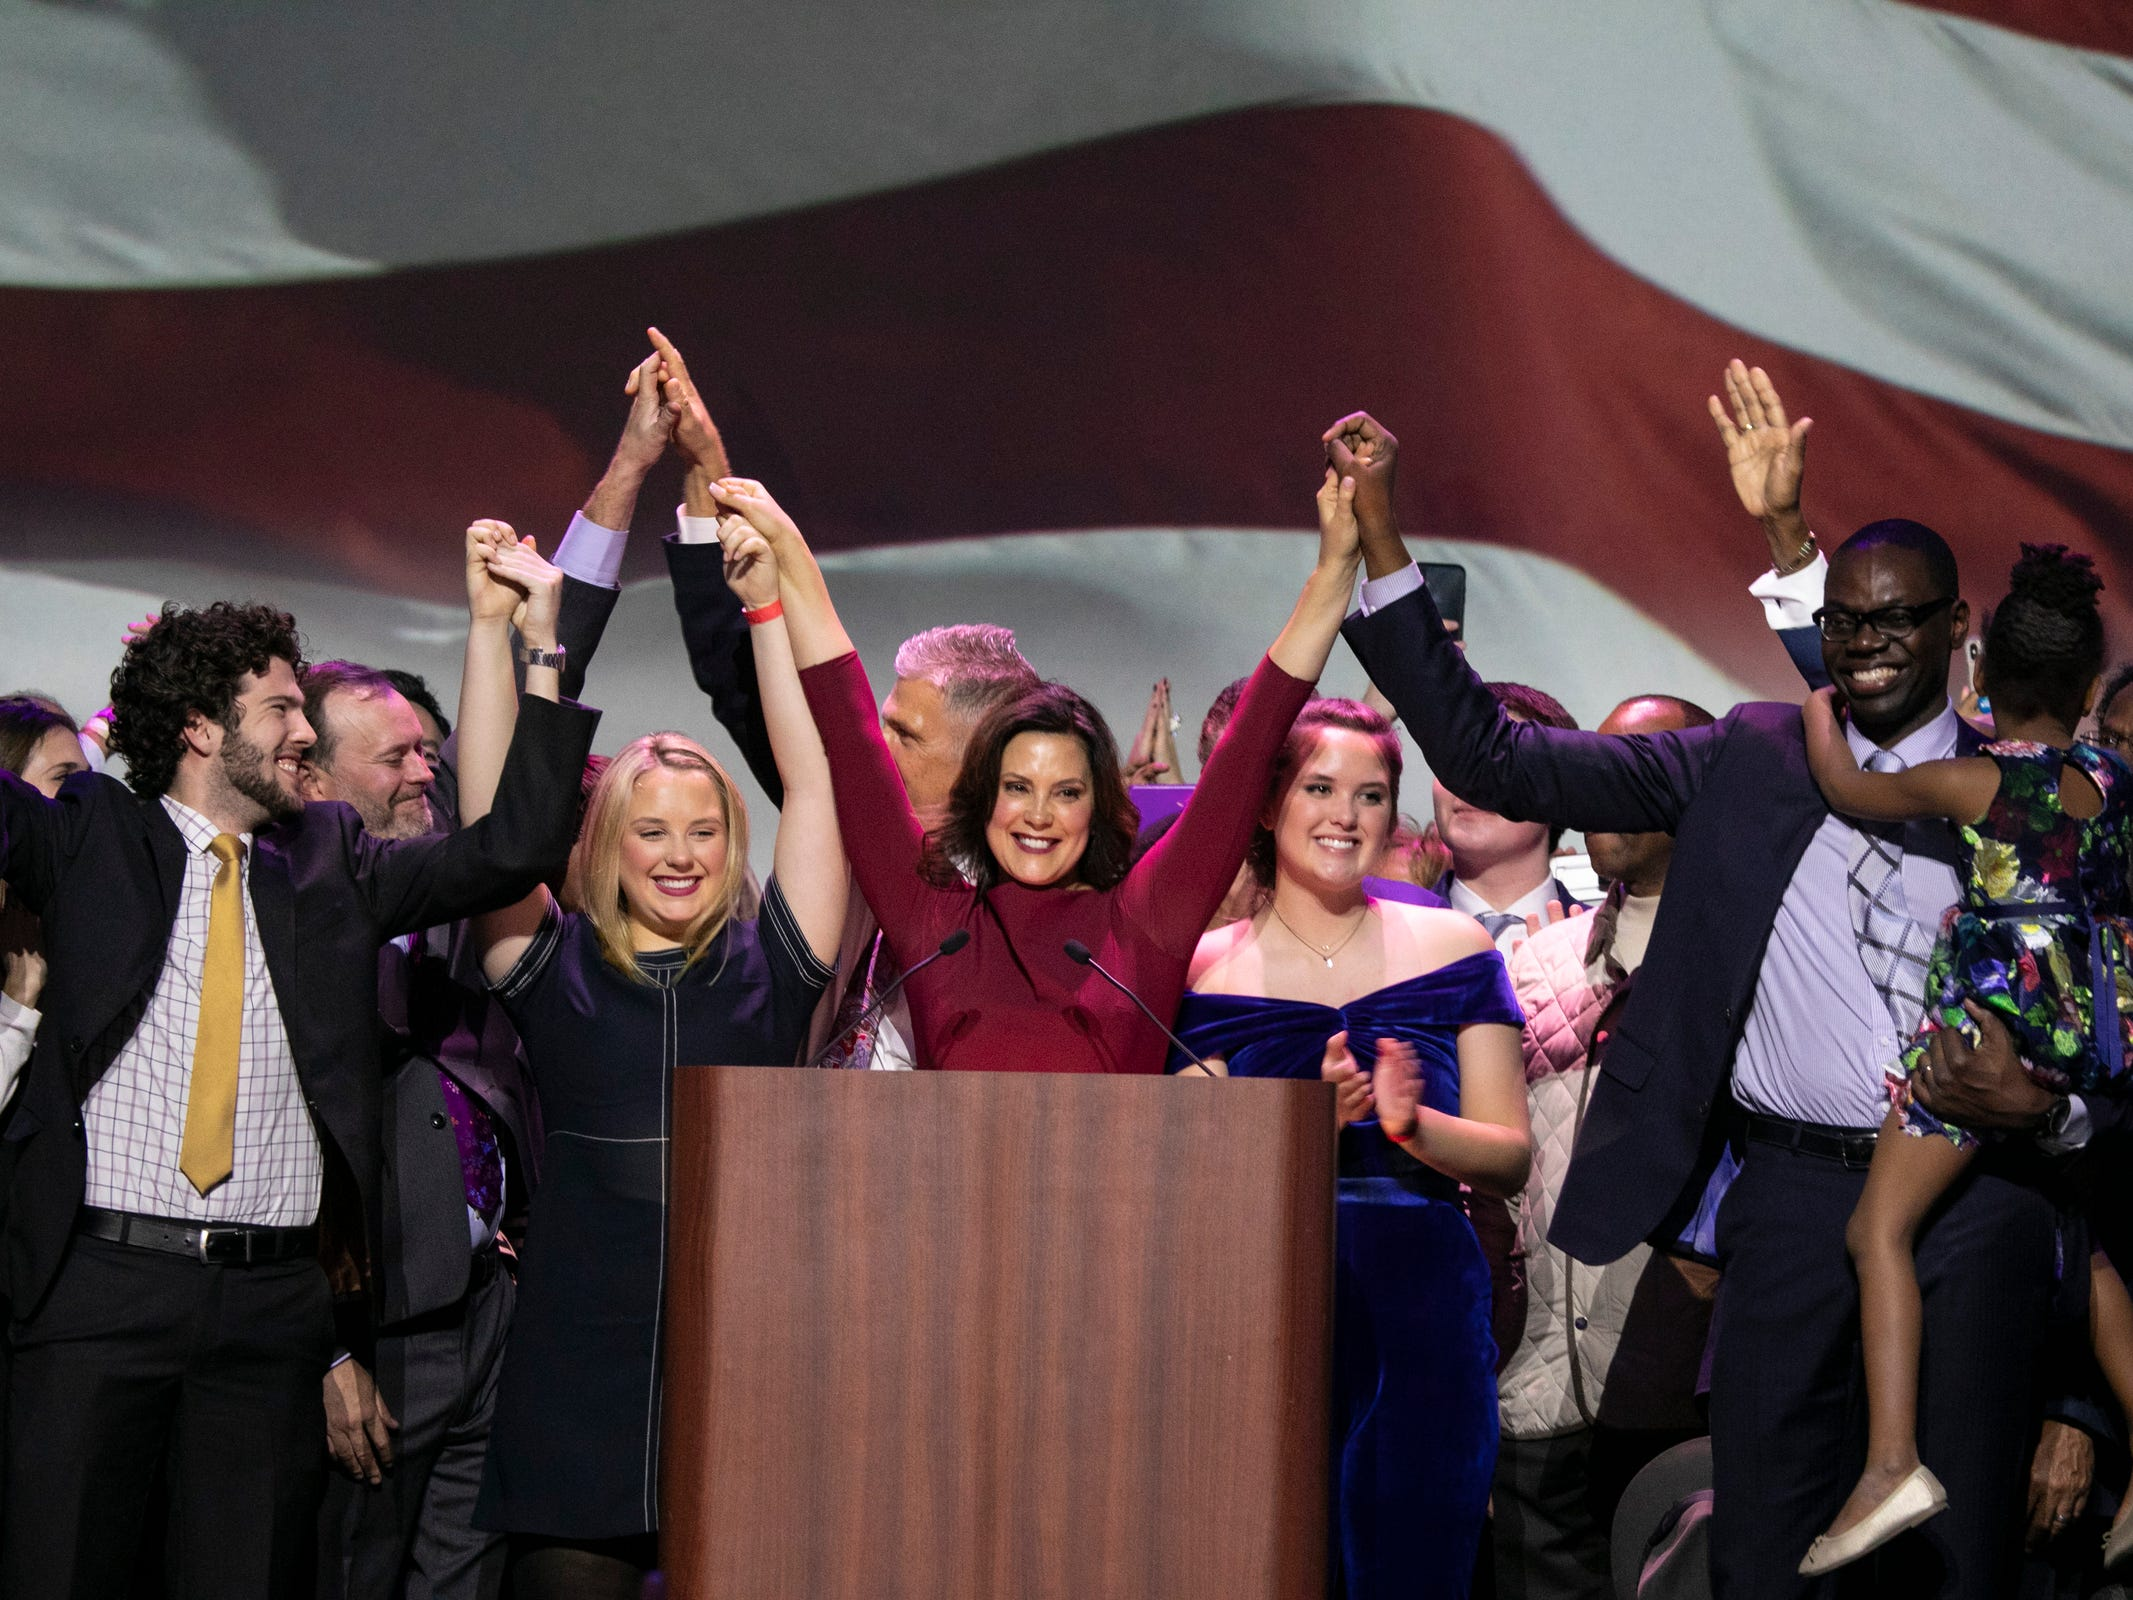 Michigan governor elect Gretchen Whitmer and her running mate Garlin Gilchrist celebrate their victory during the watch party held at the Sound Board in the MotorCity Casino in Detroit Tuesday, Nov. 6, 2018.